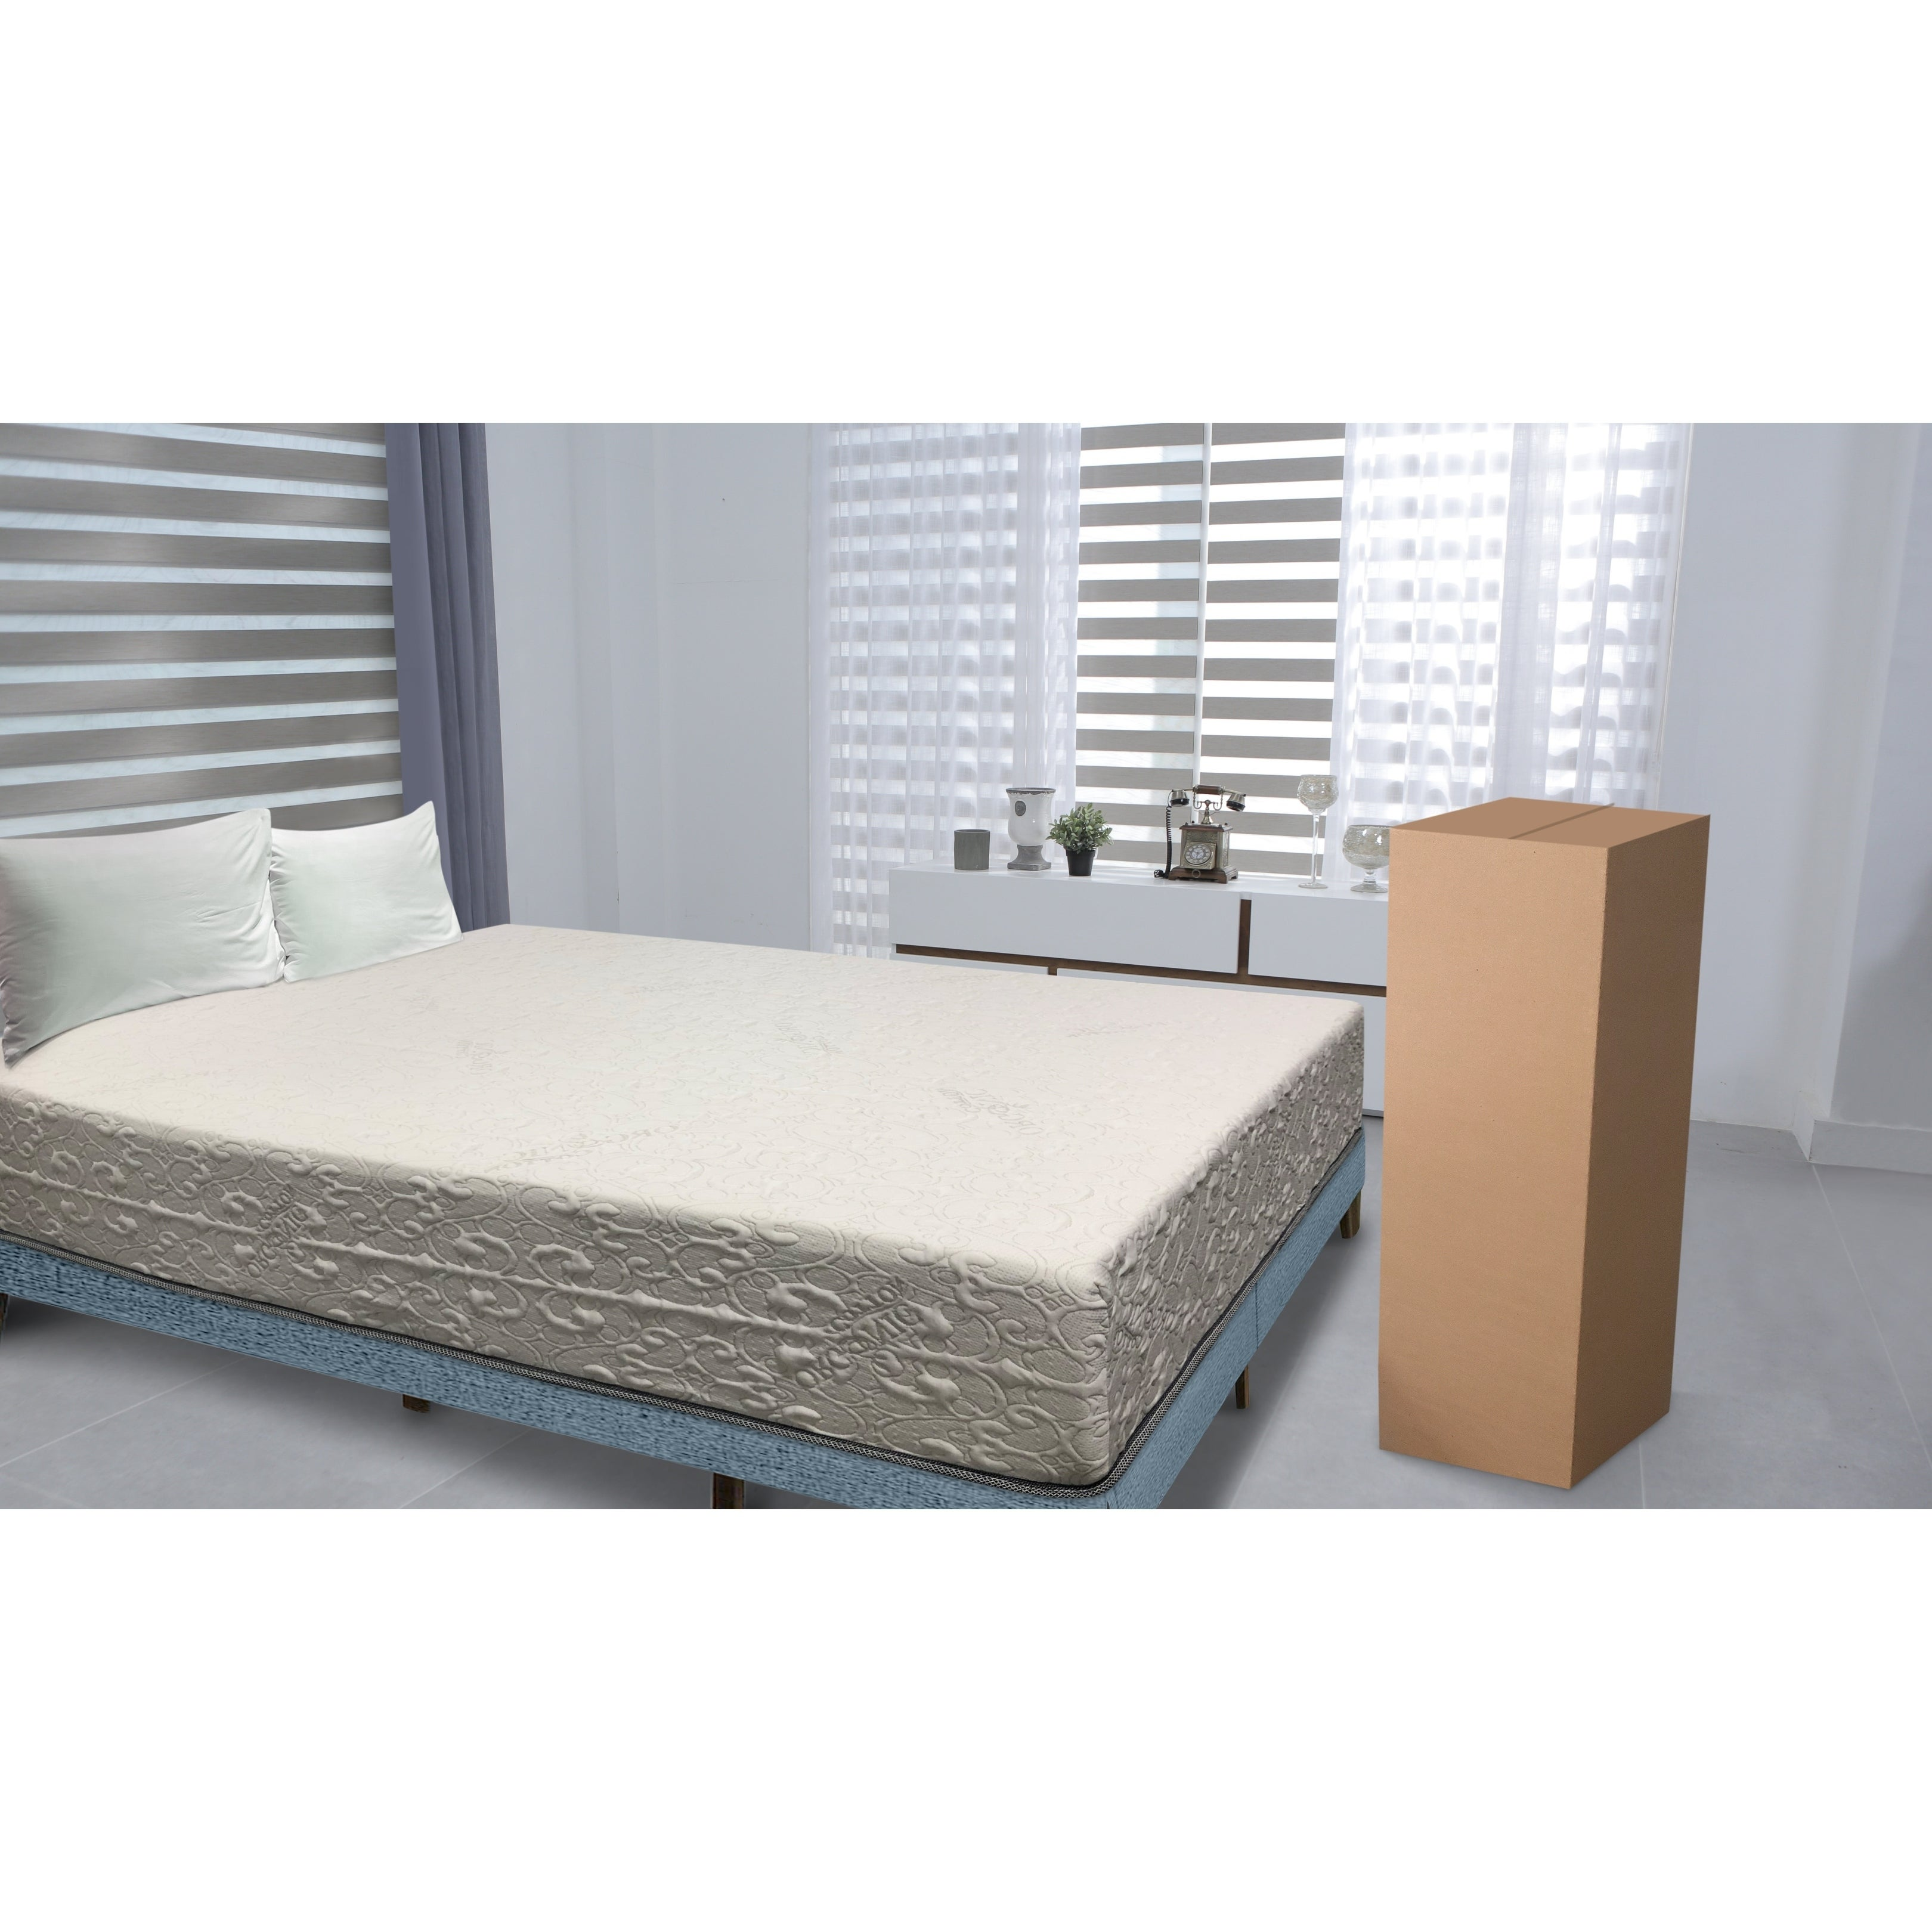 Double Layered 9-Inch Cal King-size Memory Foam Mattress ...